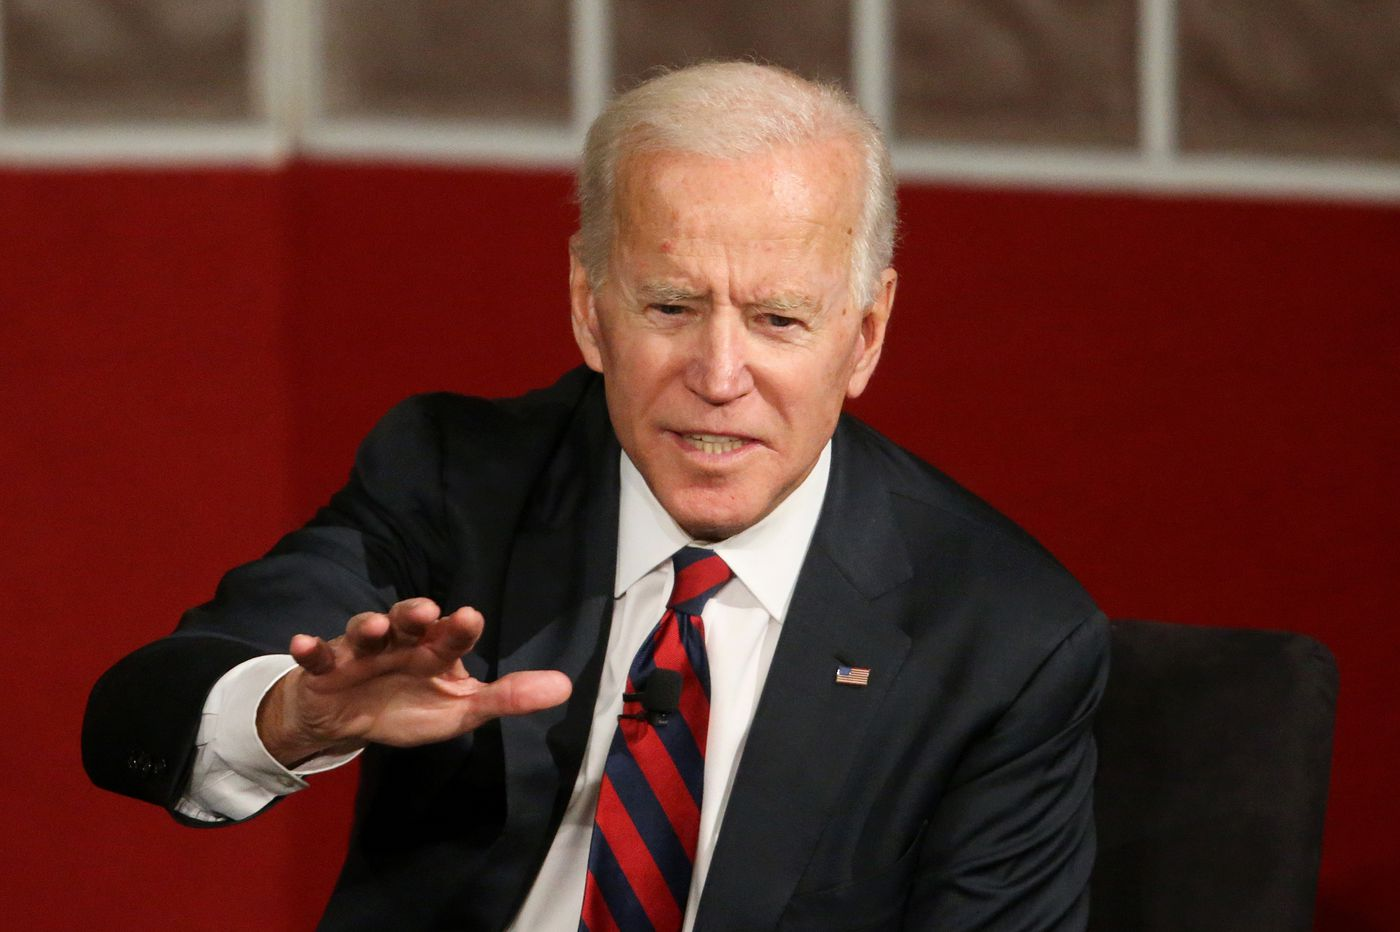 Biden to announce 2020 bid on Thursday